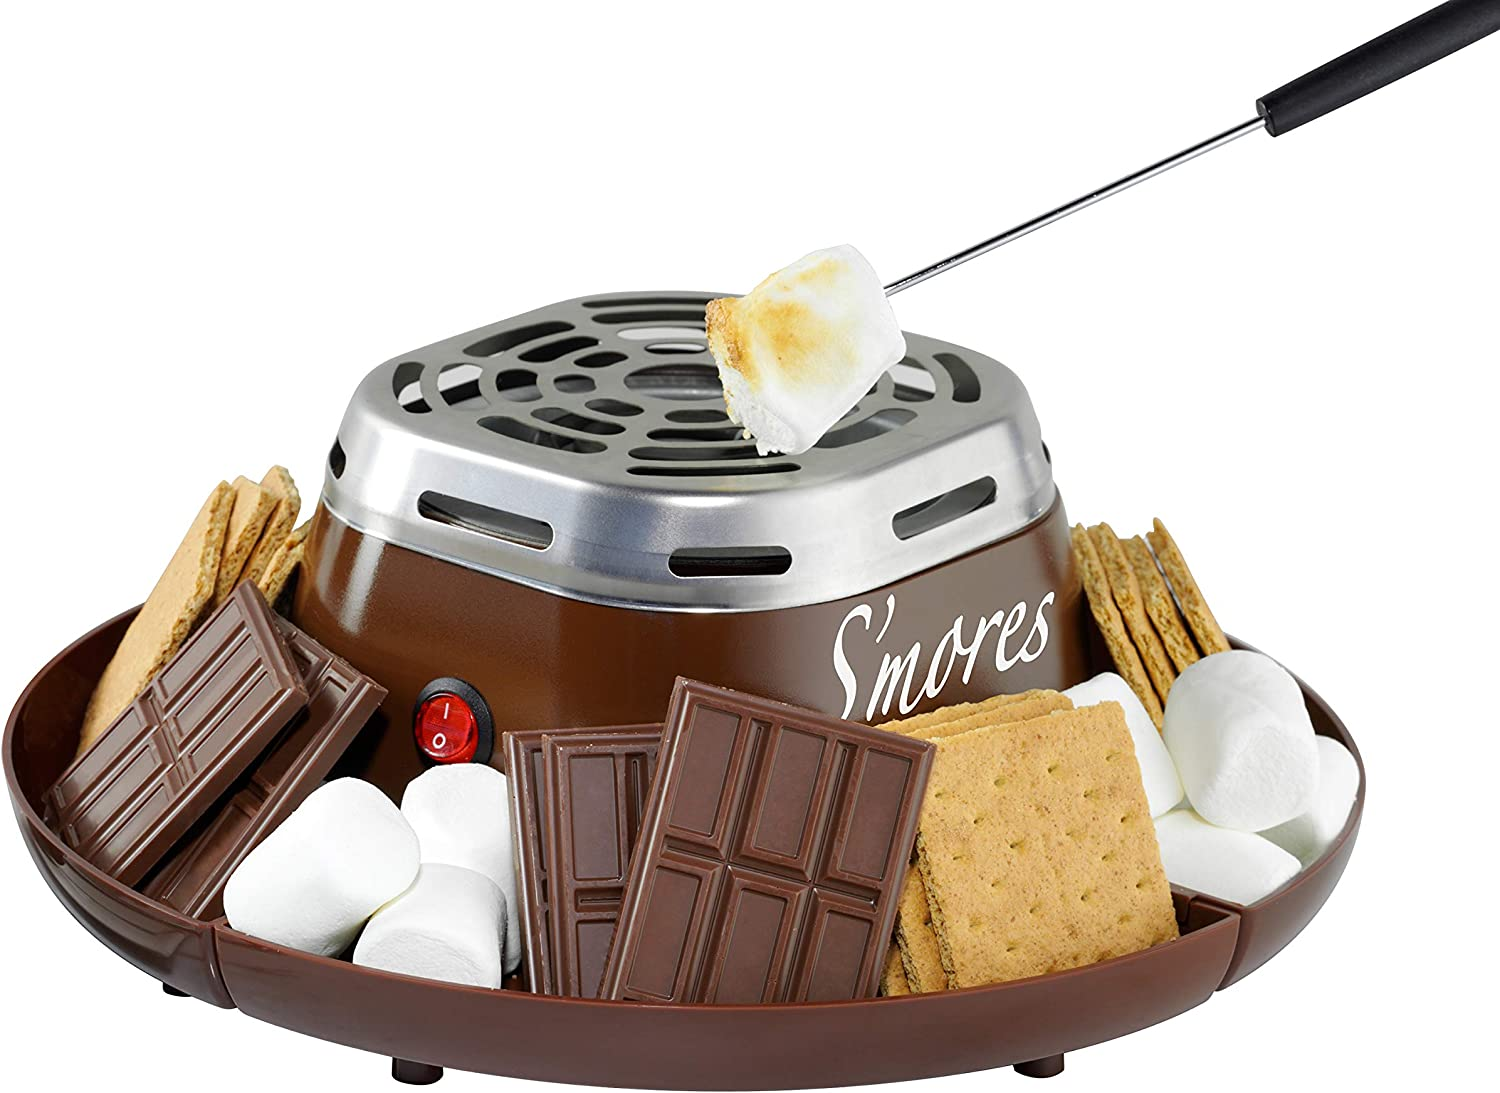 Nostalgia Indoor Electric Stainless Steel S'mores Maker with 4 Compartment Trays for Graham Crackers, Chocolate, Marshmallows and 2 Roasting Forks, Brown: Kitchen & Dining